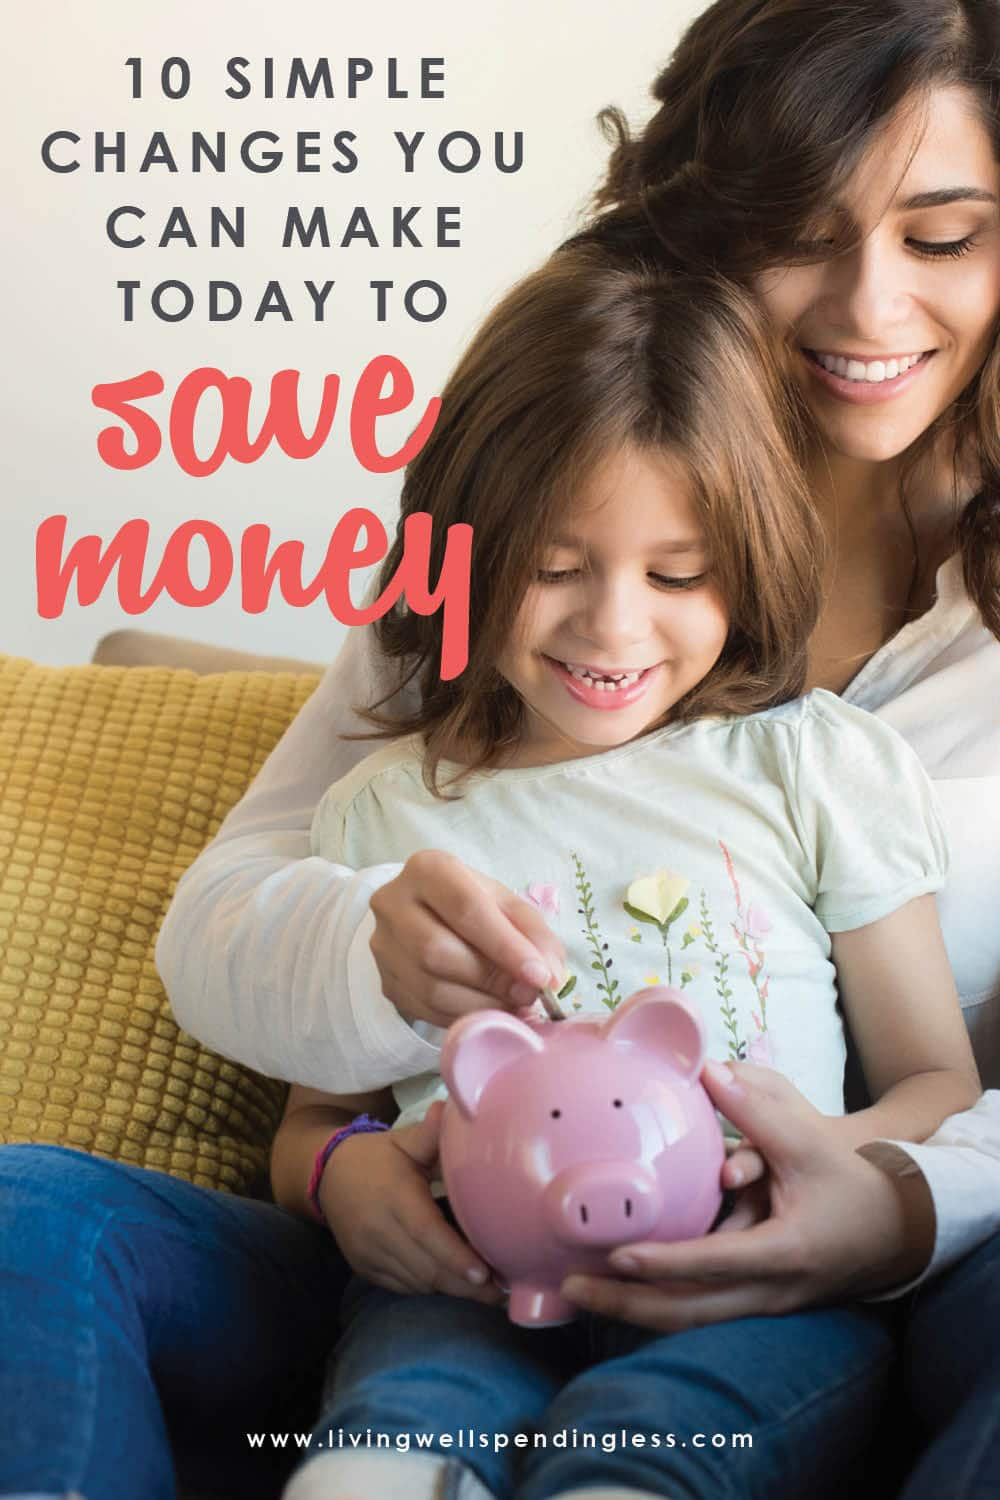 Think saving money has to be painful? Think again! Small but purposeful changes in your daily life can have a surprisingly big impact on your budget over time. Don't miss these 10 simple changes you can make TODAY to save big tomorrow! #moneysavingtips #savings #moneytips #smartmoney